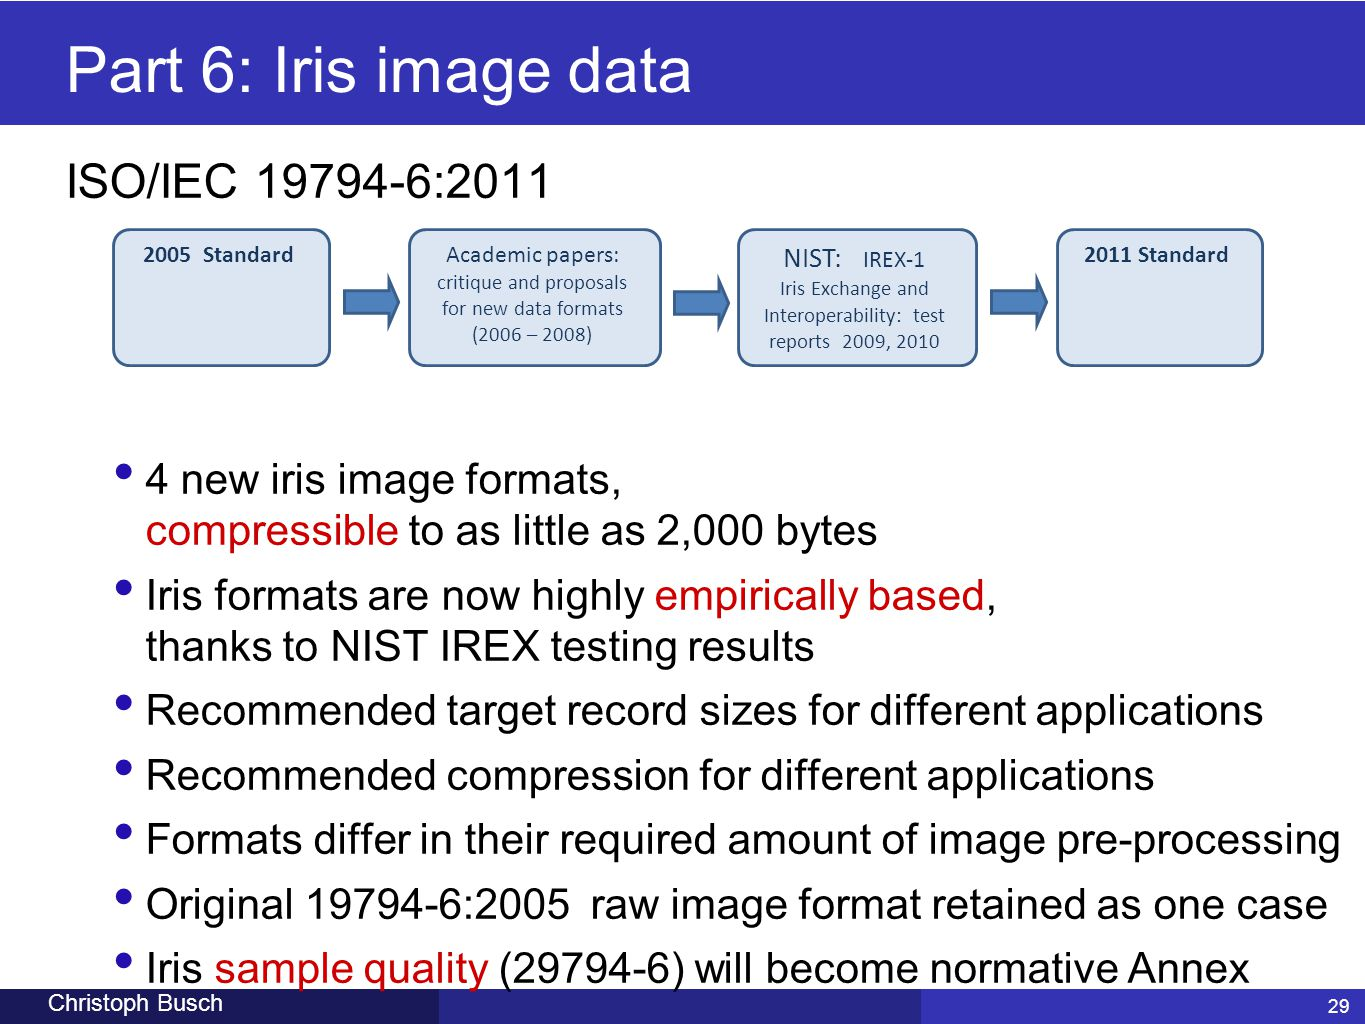 Iris Exchange and Interoperability: test reports 2009, 2010